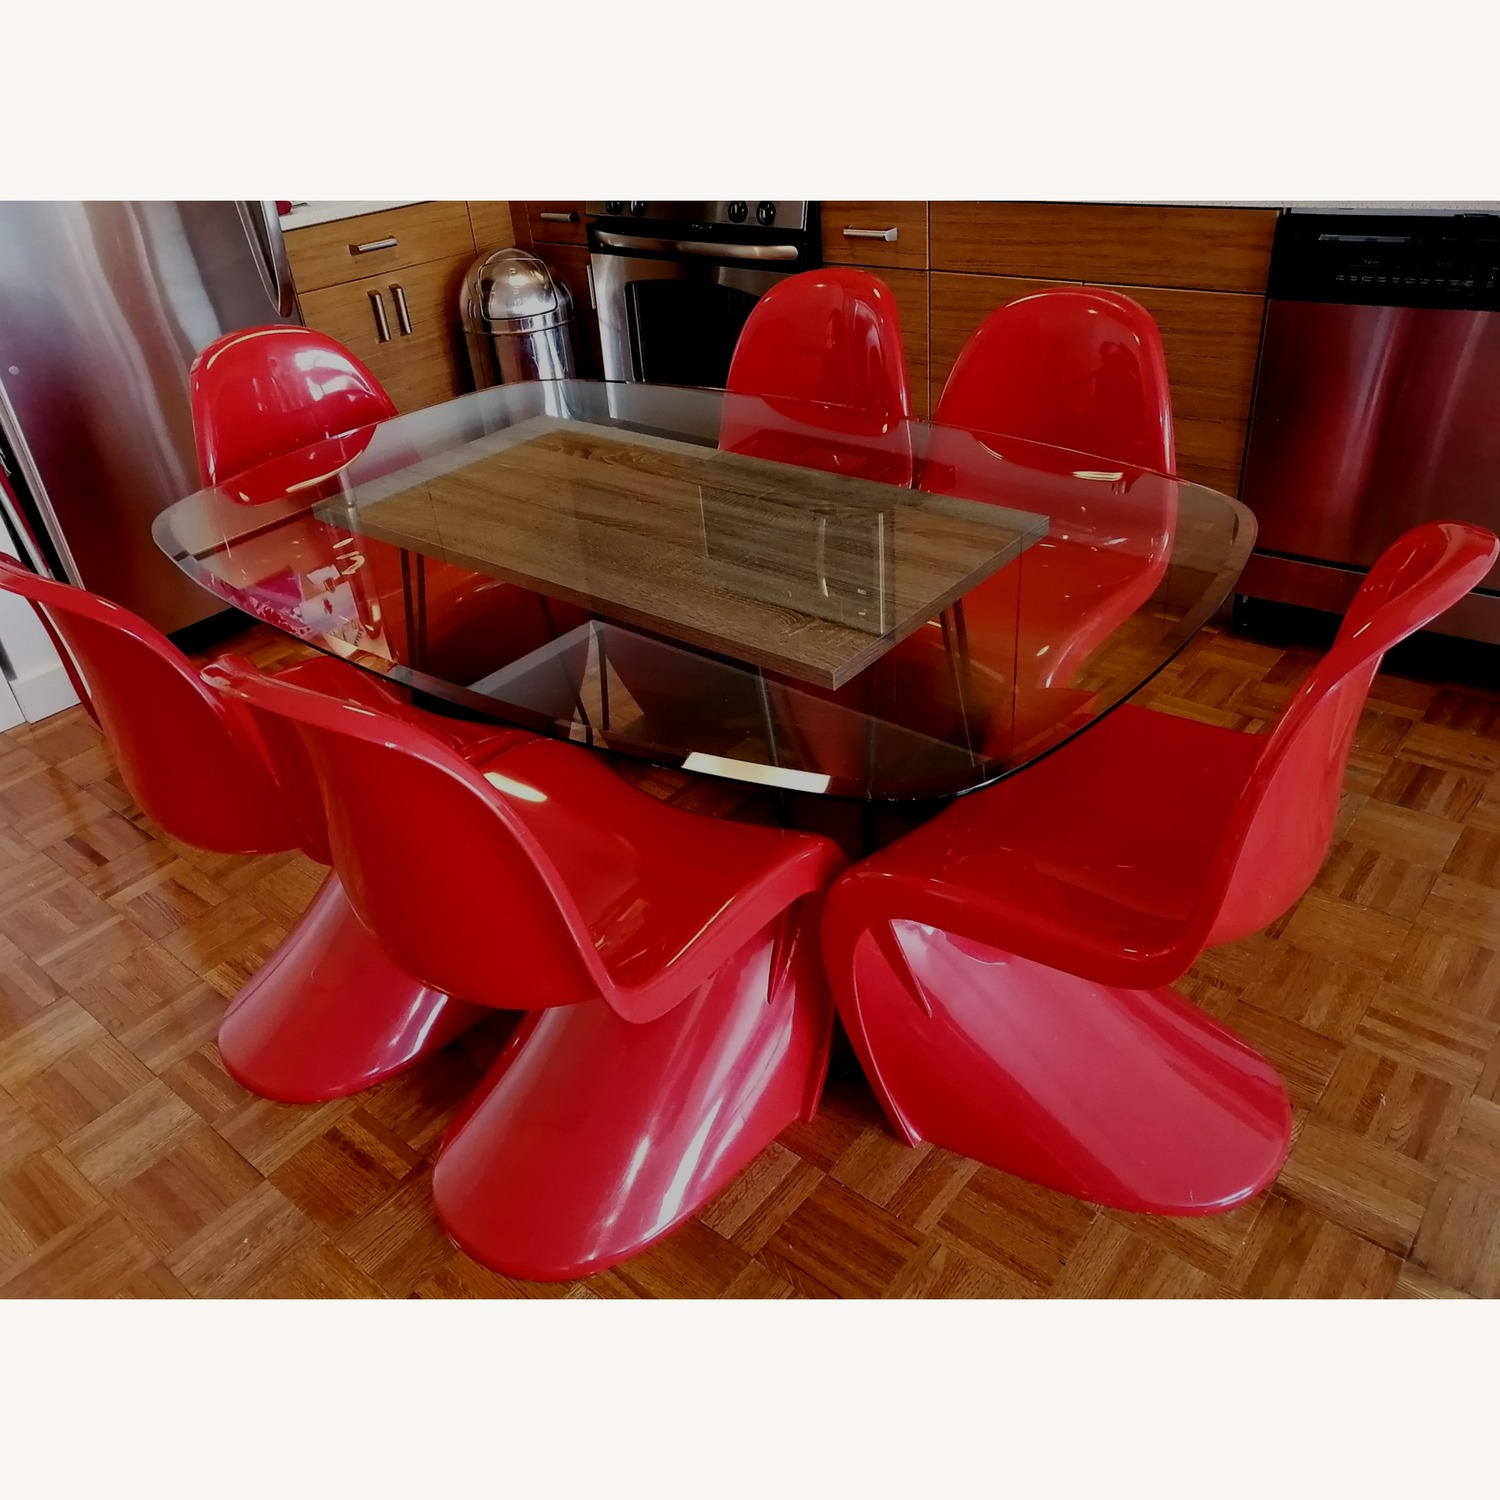 6 Red Acrylic Panton Chairs - image-1